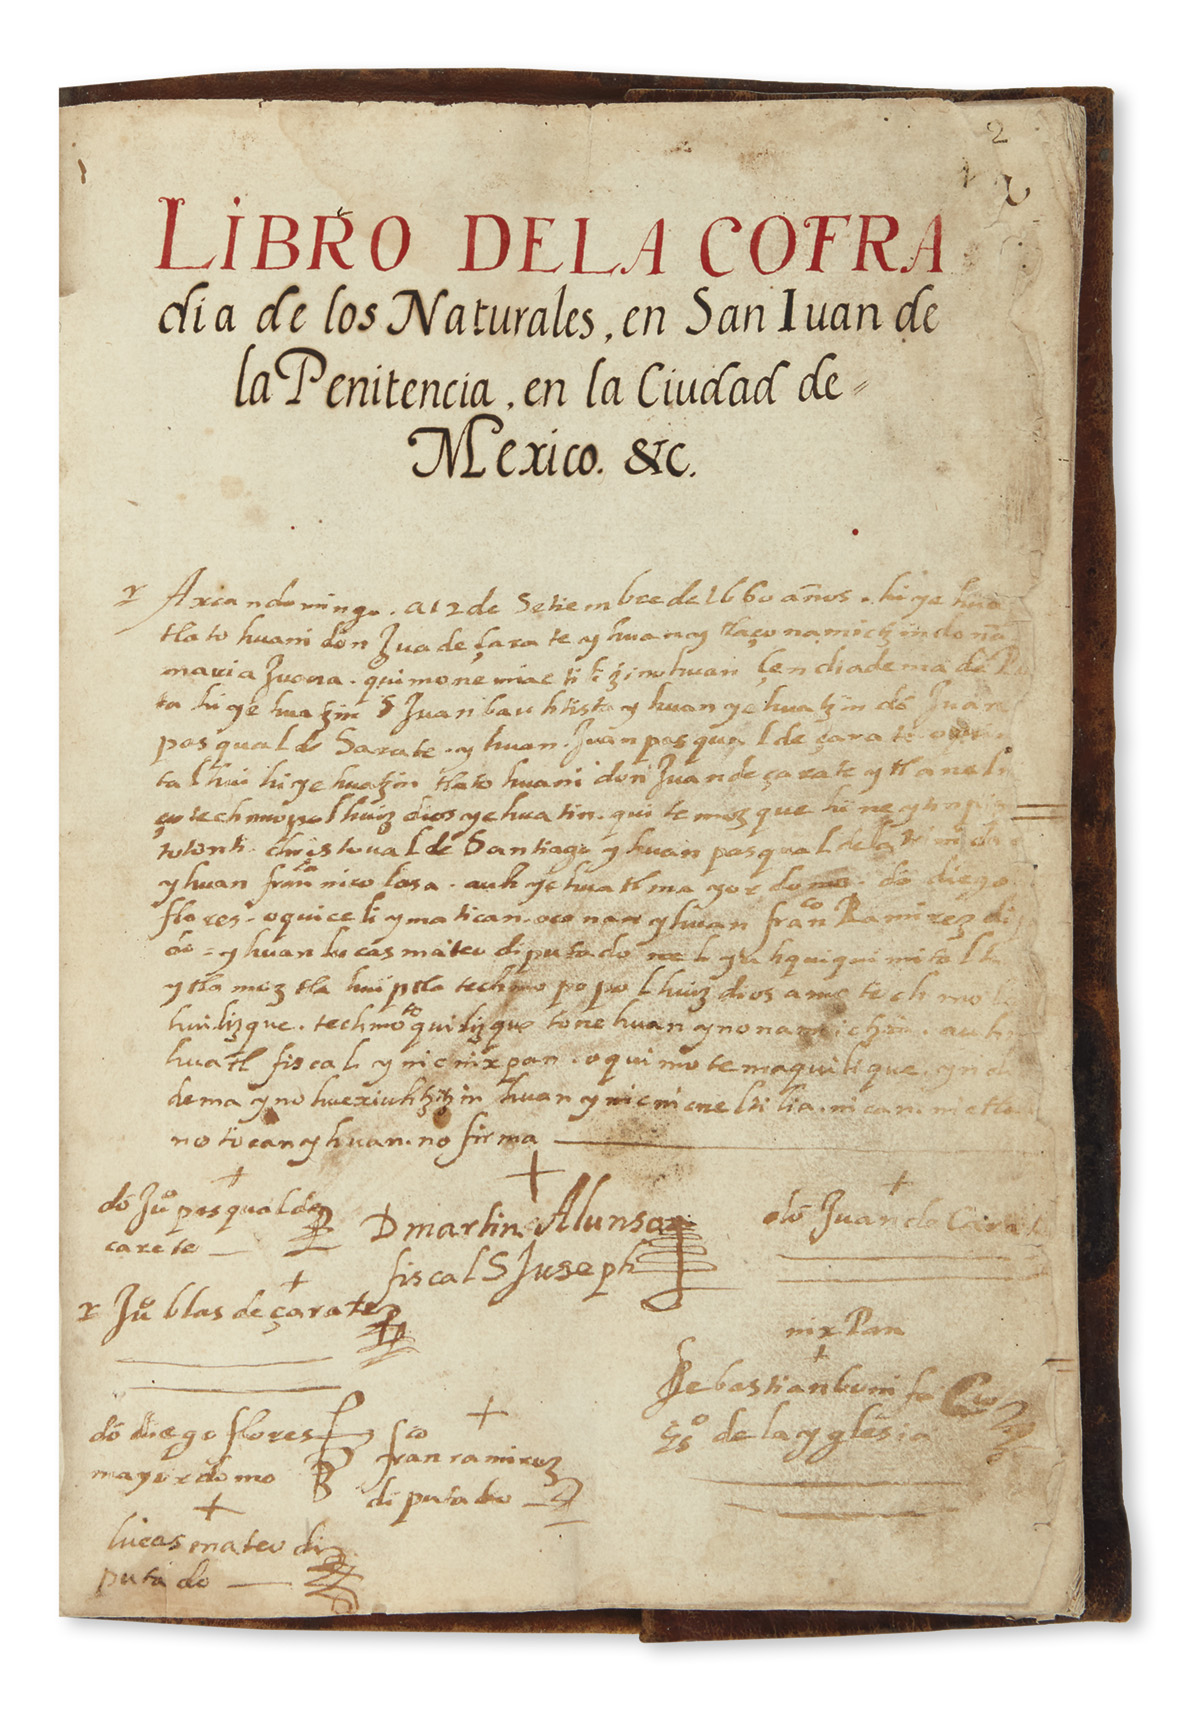 (MEXICAN MANUSCRIPTS.) Record book and constitution of an Indian cofradía in Mexico City.